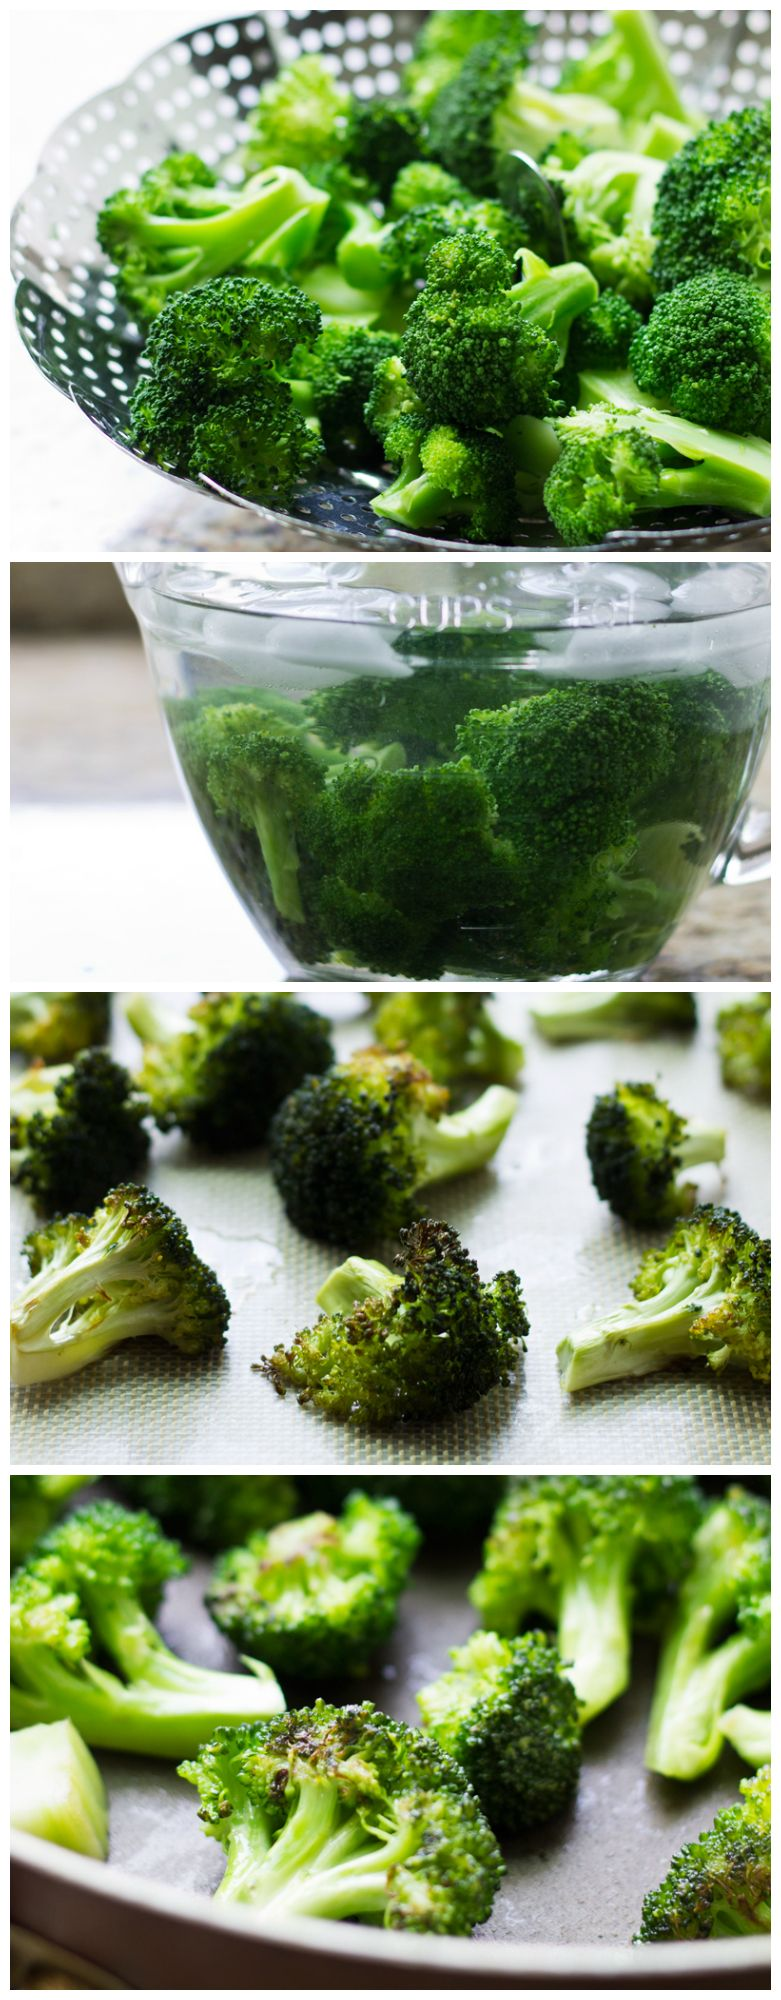 Broccoli Four Ways includes 4 different preparation methods and suggestions for interchangeable flavors and toppings. | Culinary Hill